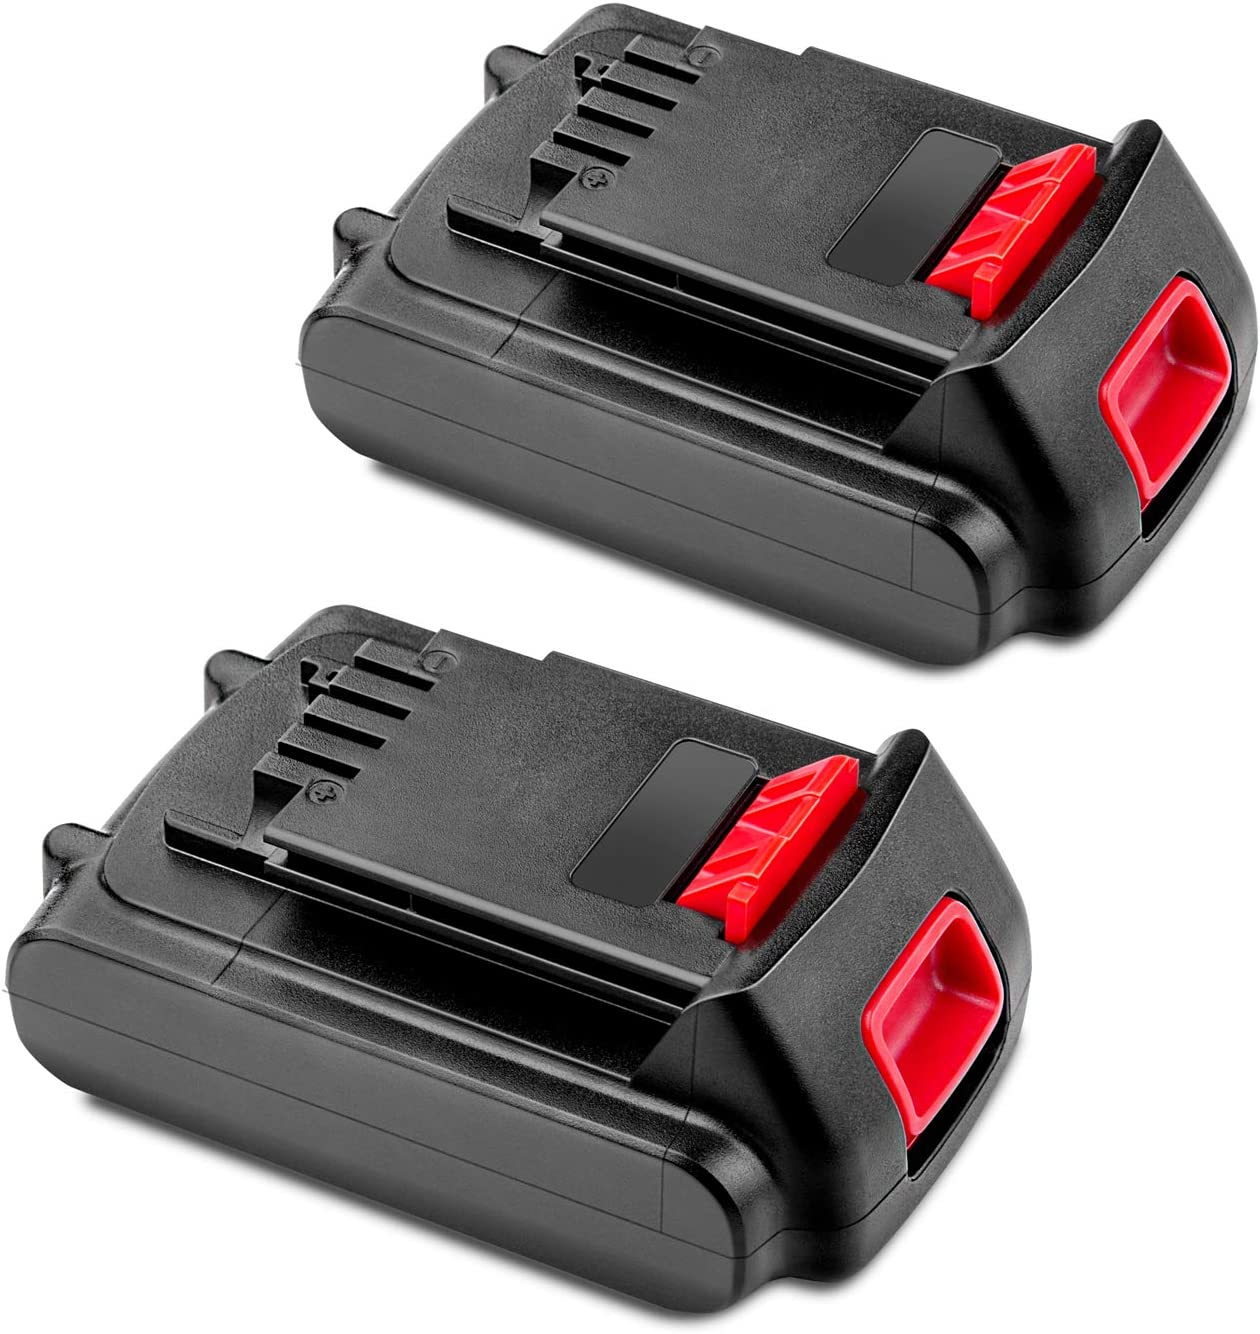 Oakland Mall 2 Pack Cordless-Tool-Battery-Packs for Black 20V Max Al sold out. Decker